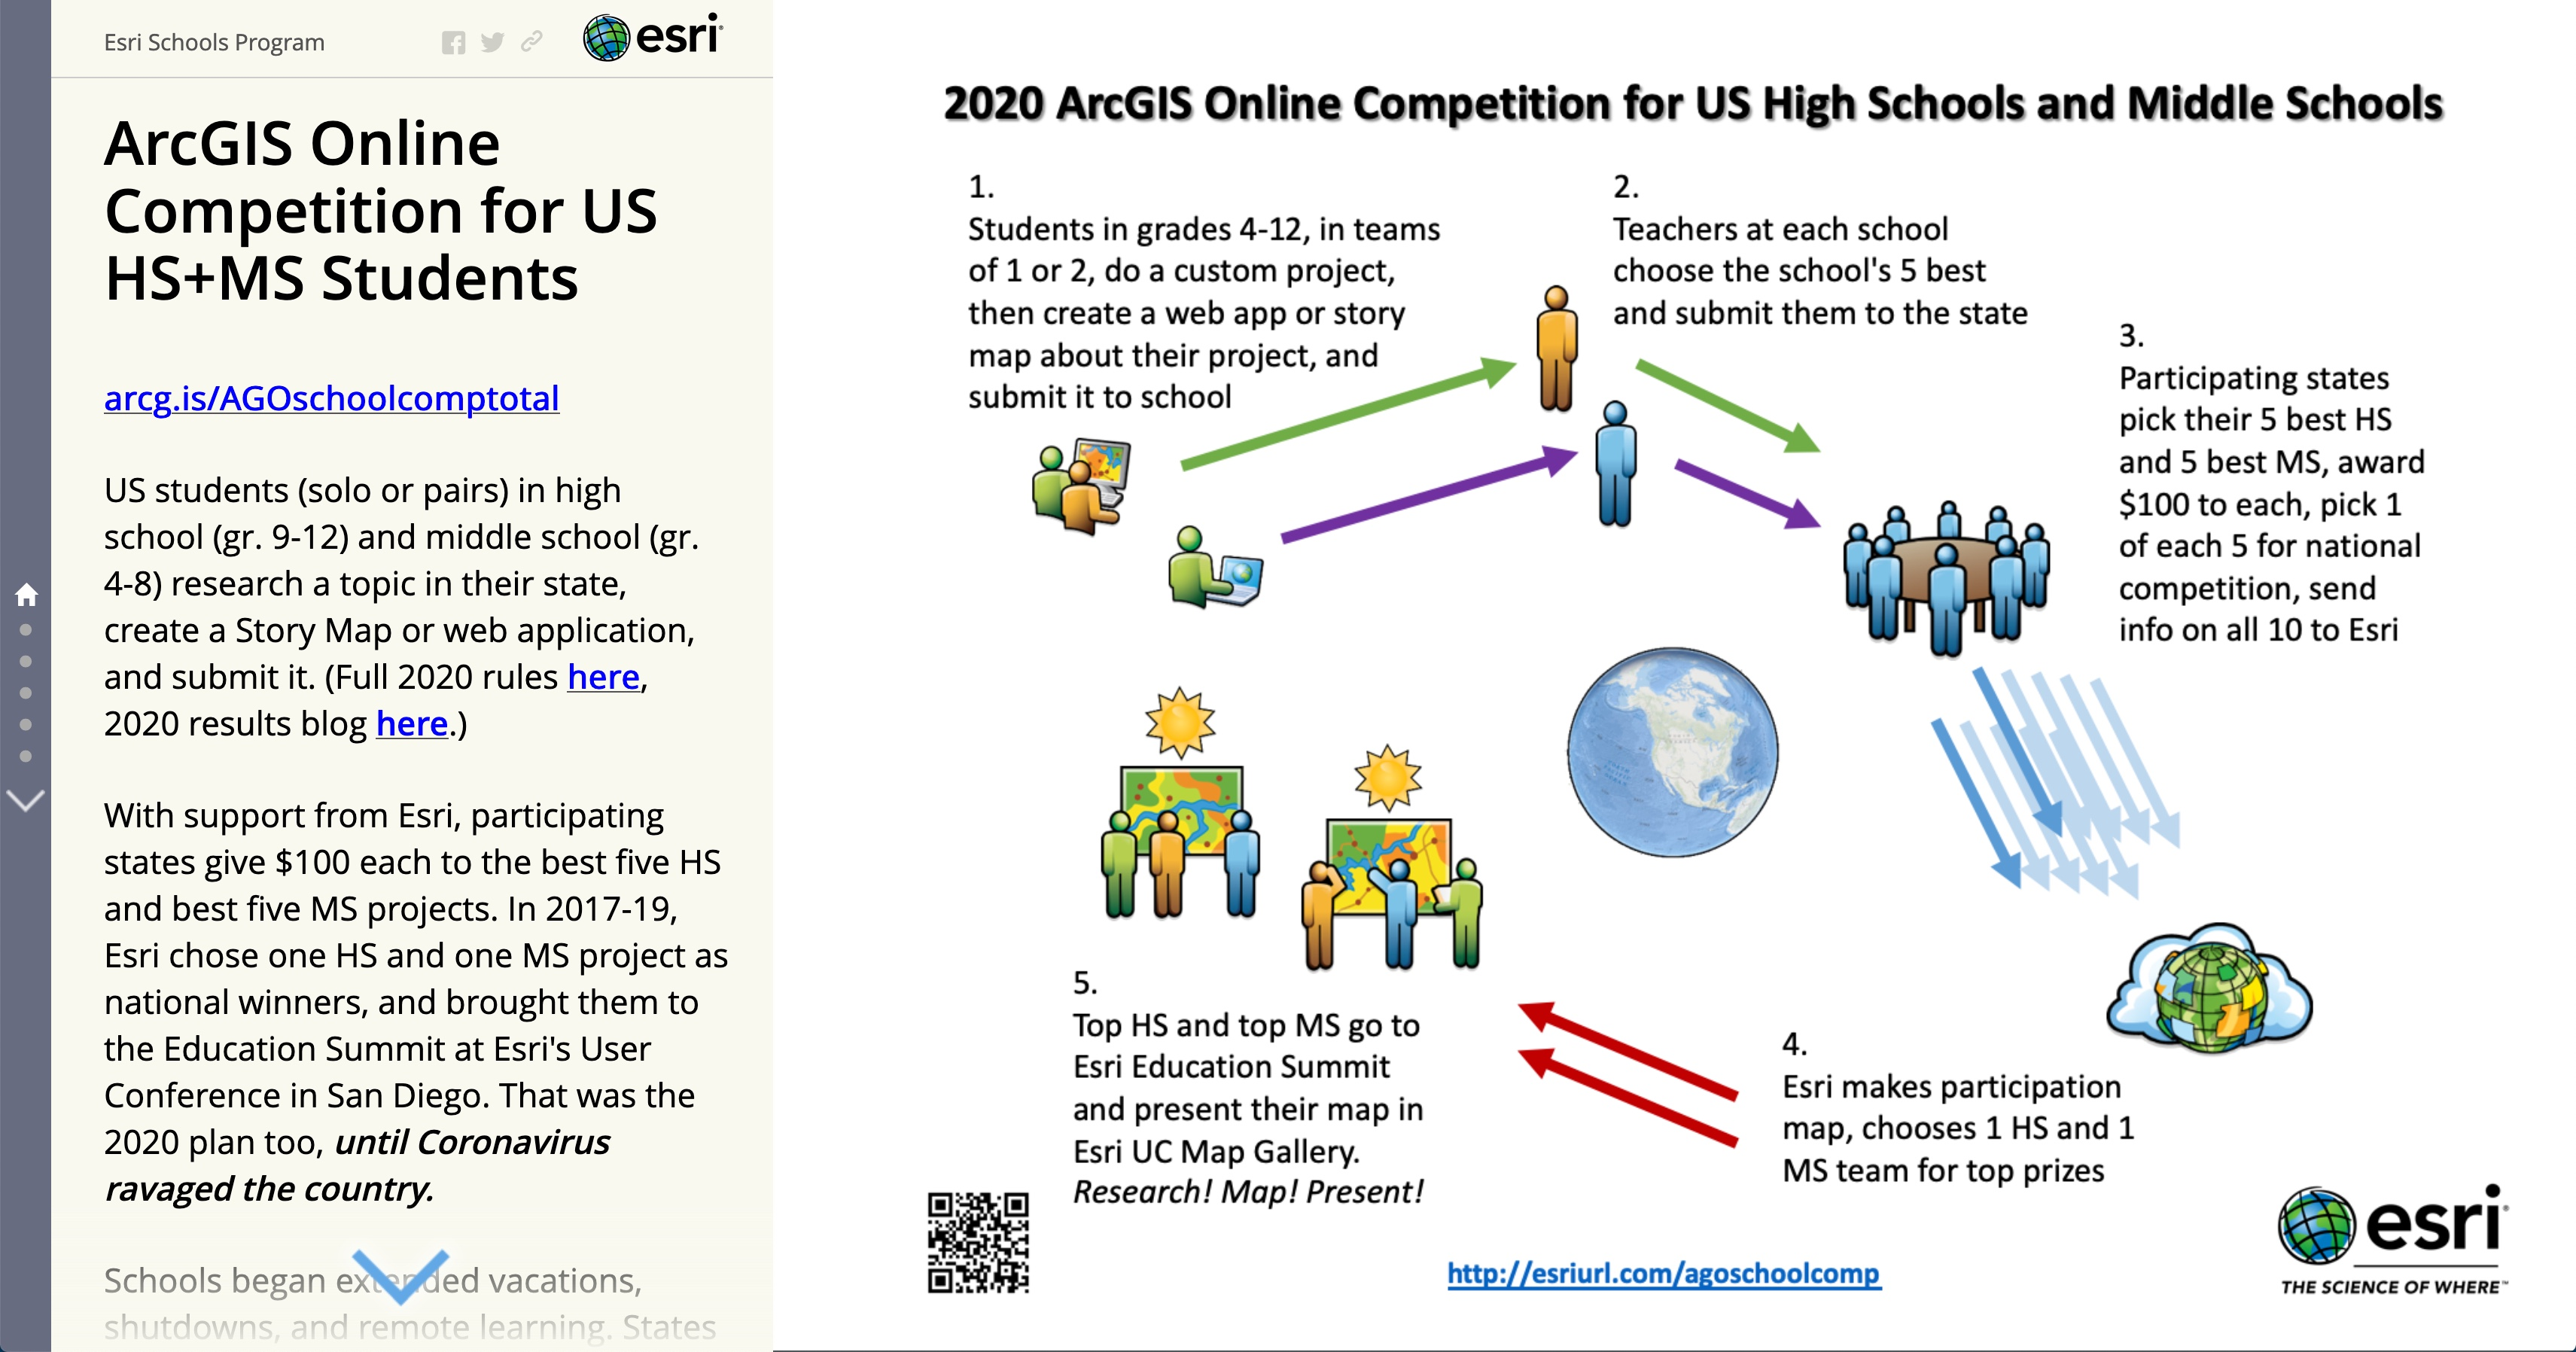 ArcGIS Online School Competition Results Total